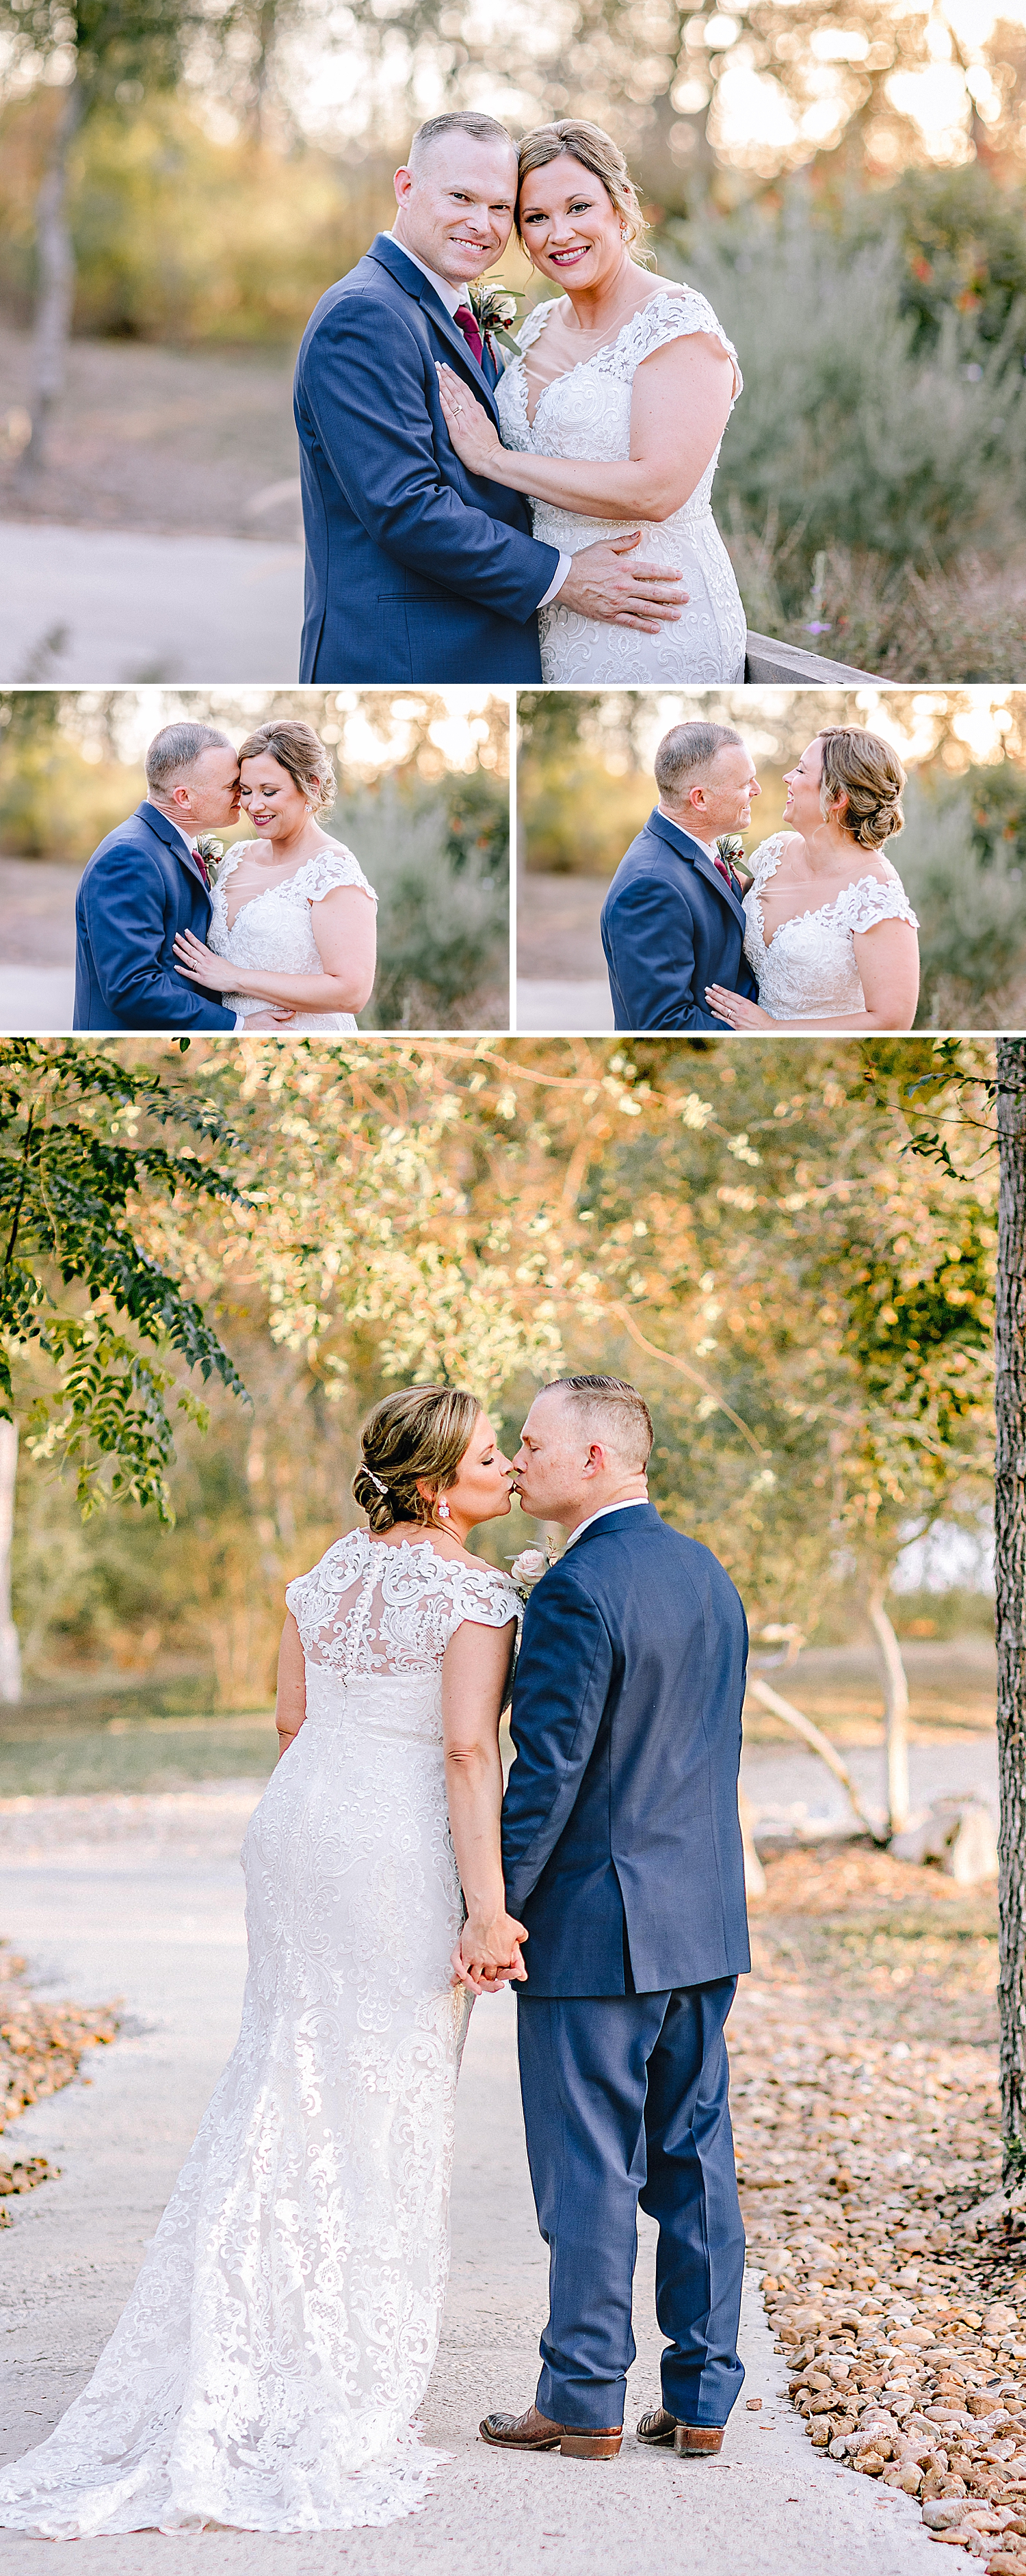 Geronimo-Oaks-Wedding-Venue-Seguin-Texas-Elegant-Navy-Burgundy-Wedding-Carly-Barton-Photography_0054.jpg